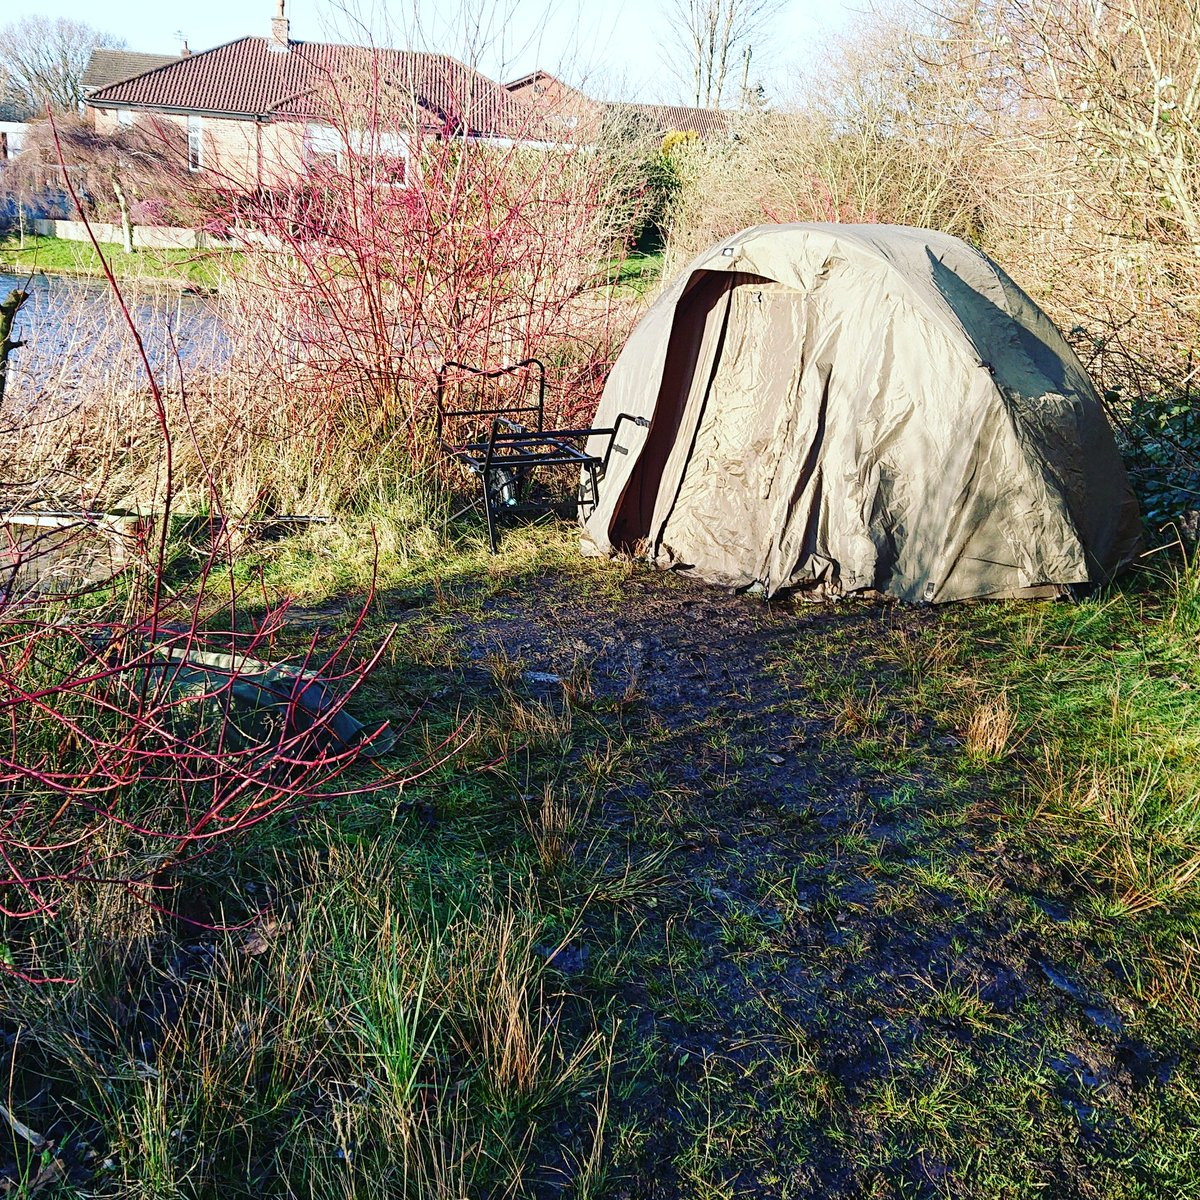 Bivvy life 🎣👍#carpfishing #Jrc #bivvylife https://t.co/wjuNMUpVpc